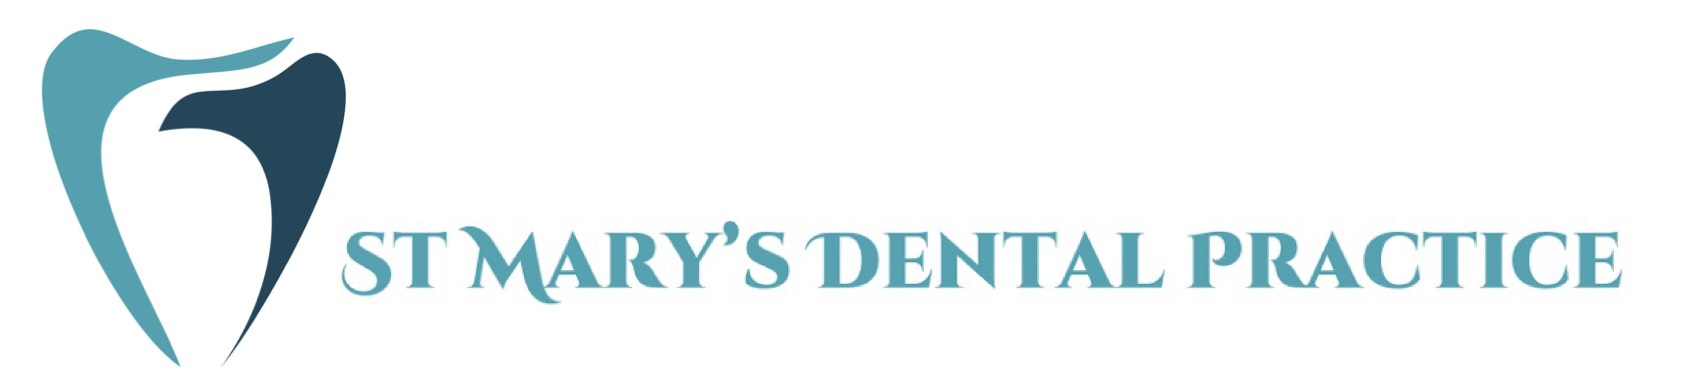 St Marys Dental Practice Ely